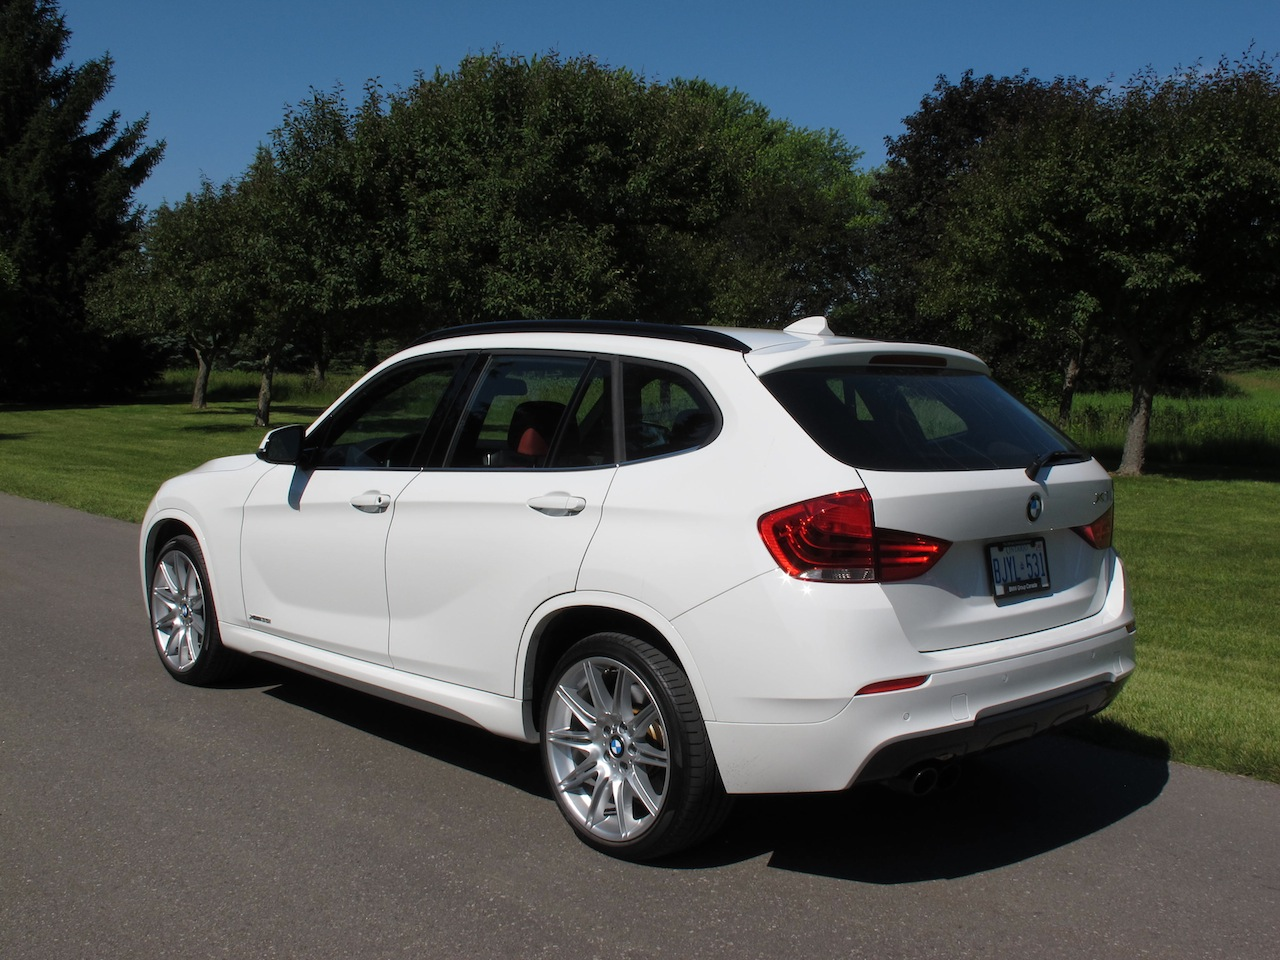 2013 bmw x1 xdrive35i m sport review cars photos test drives and reviews canadian auto review. Black Bedroom Furniture Sets. Home Design Ideas